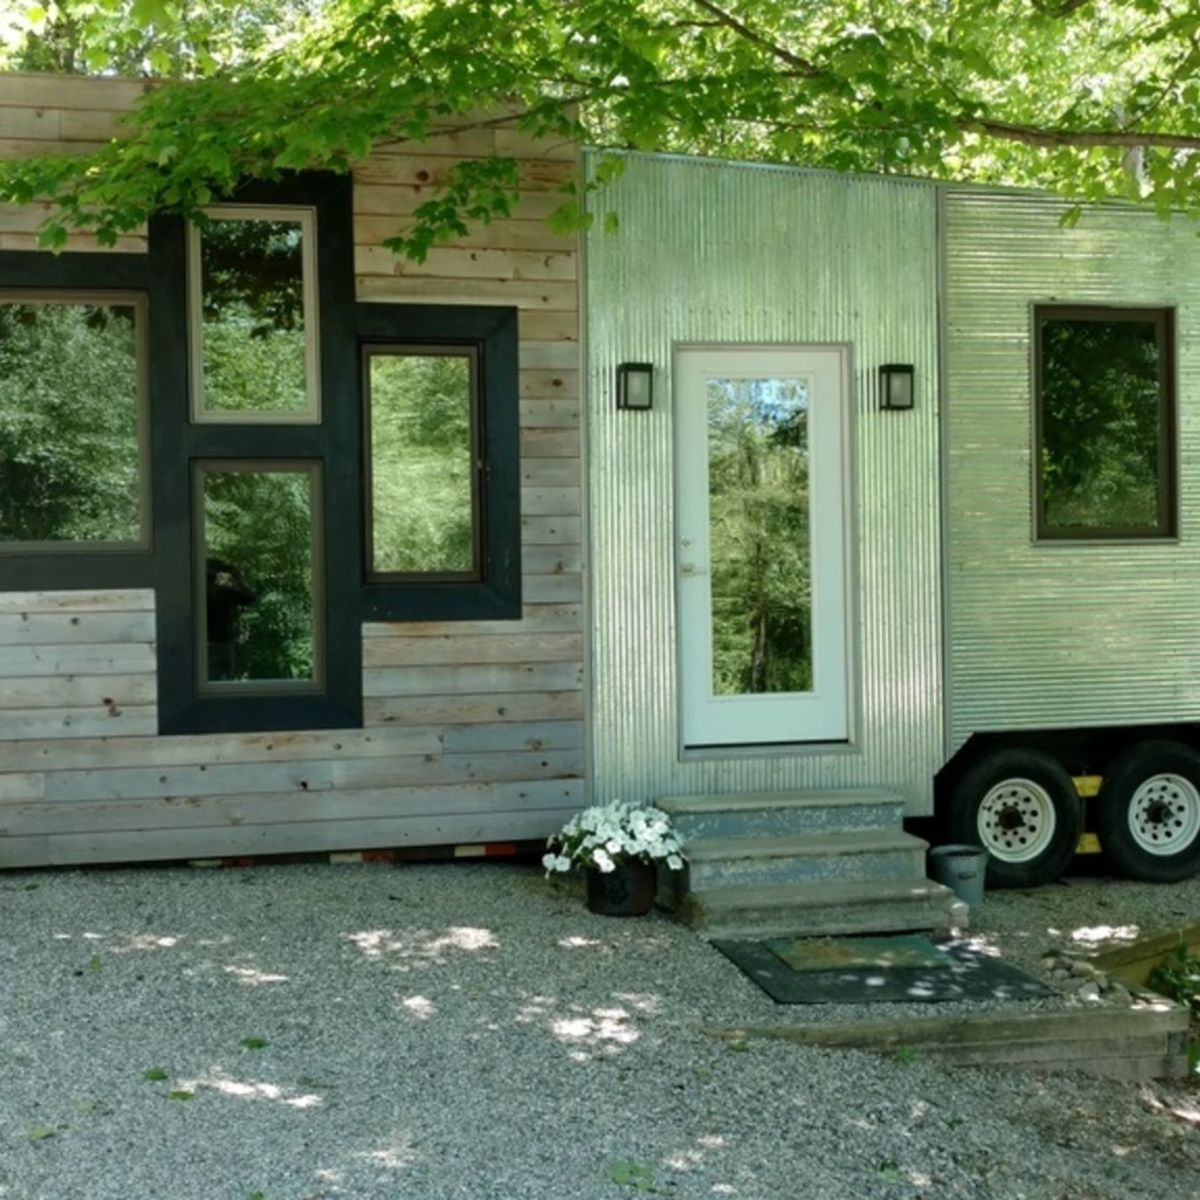 Tinyhaus - Tiny House for Sale in Sand Lake, Michigan - Tiny House Listings